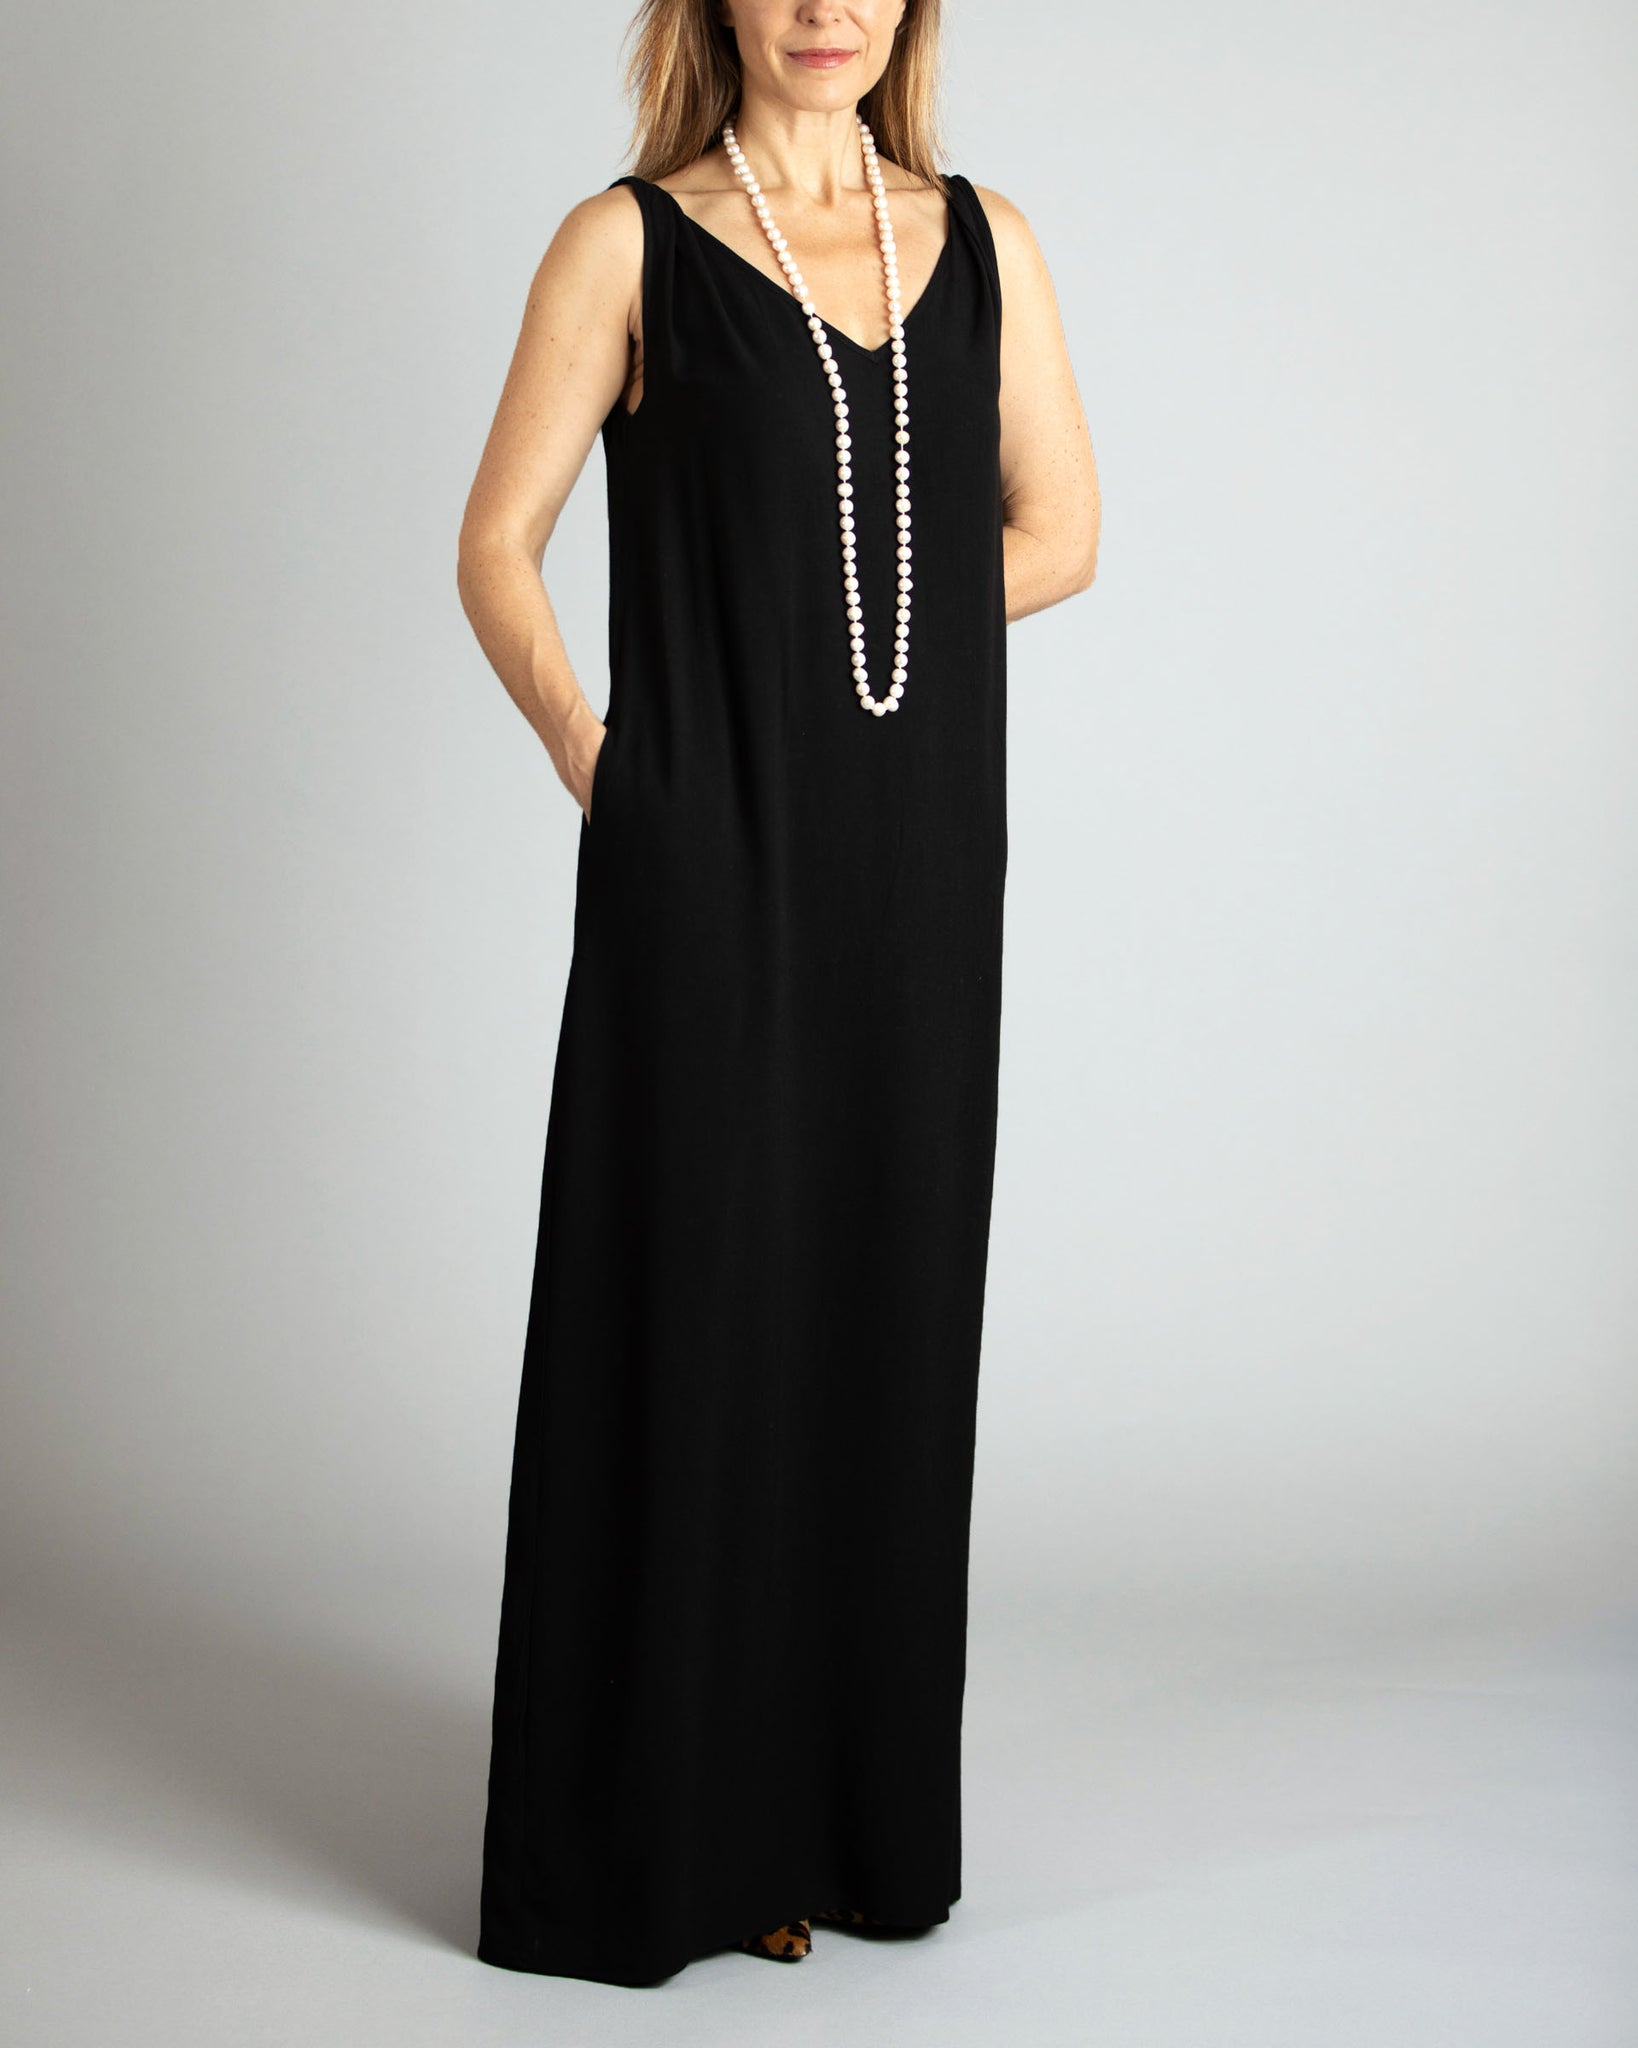 Timeless Black Maxi Dress